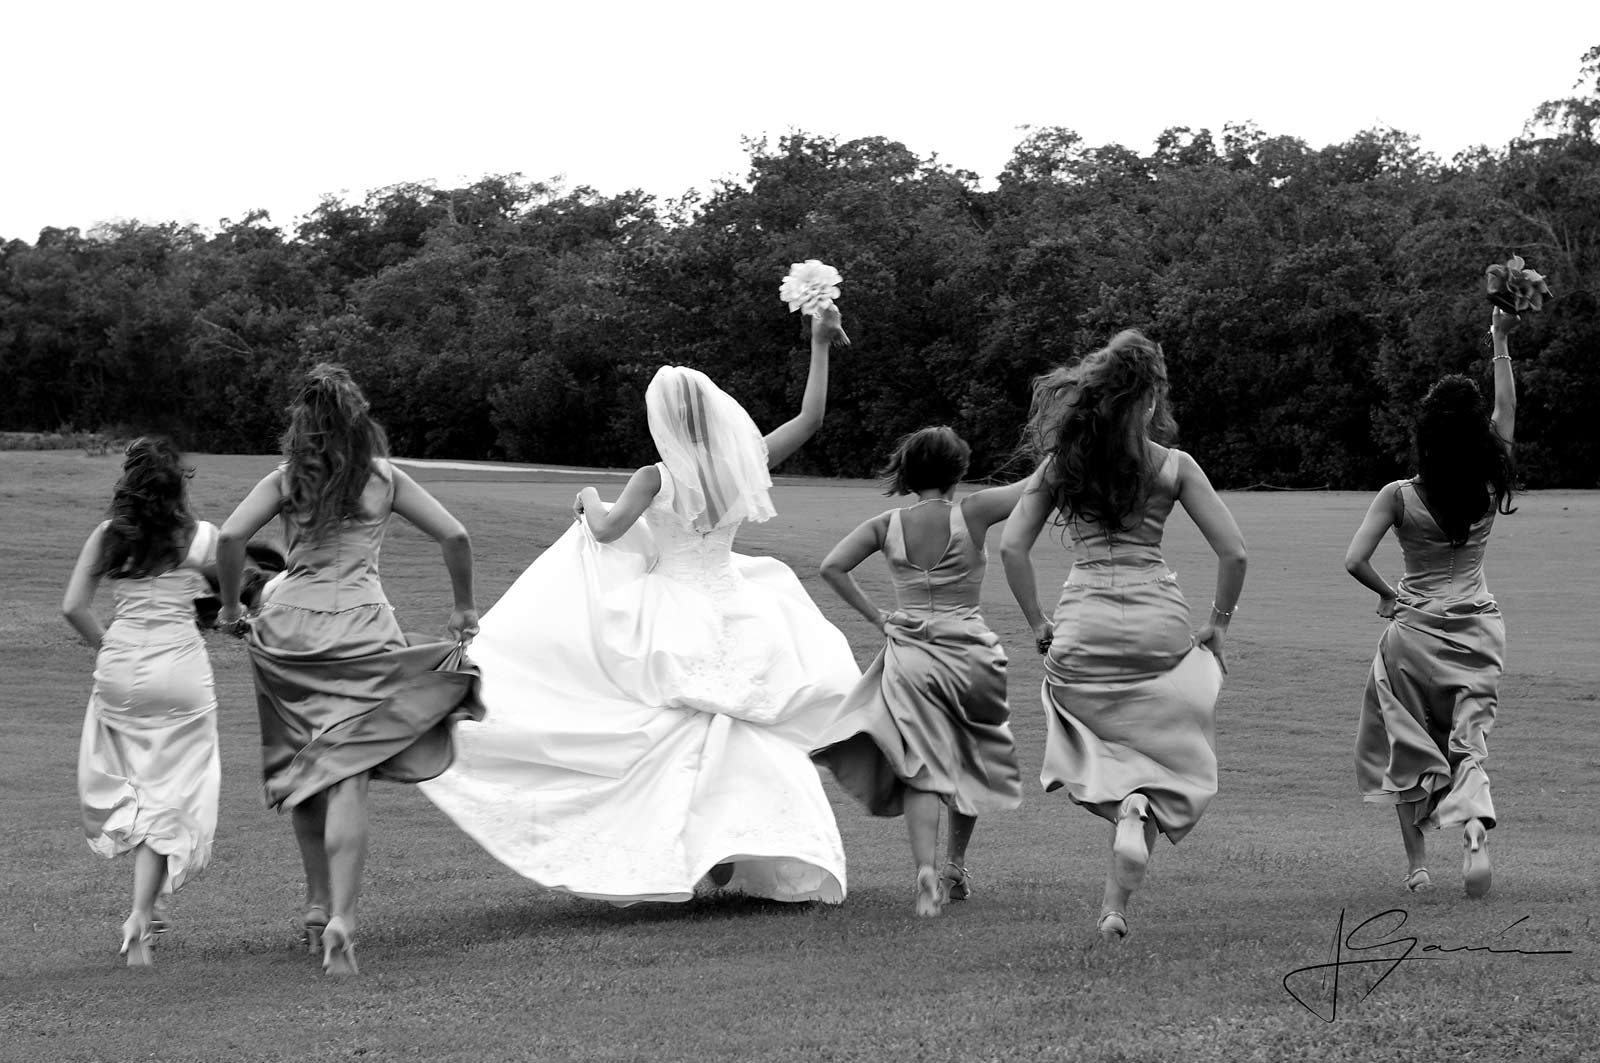 Funny Bride with Bridesmaids Running on Grass - Black & White